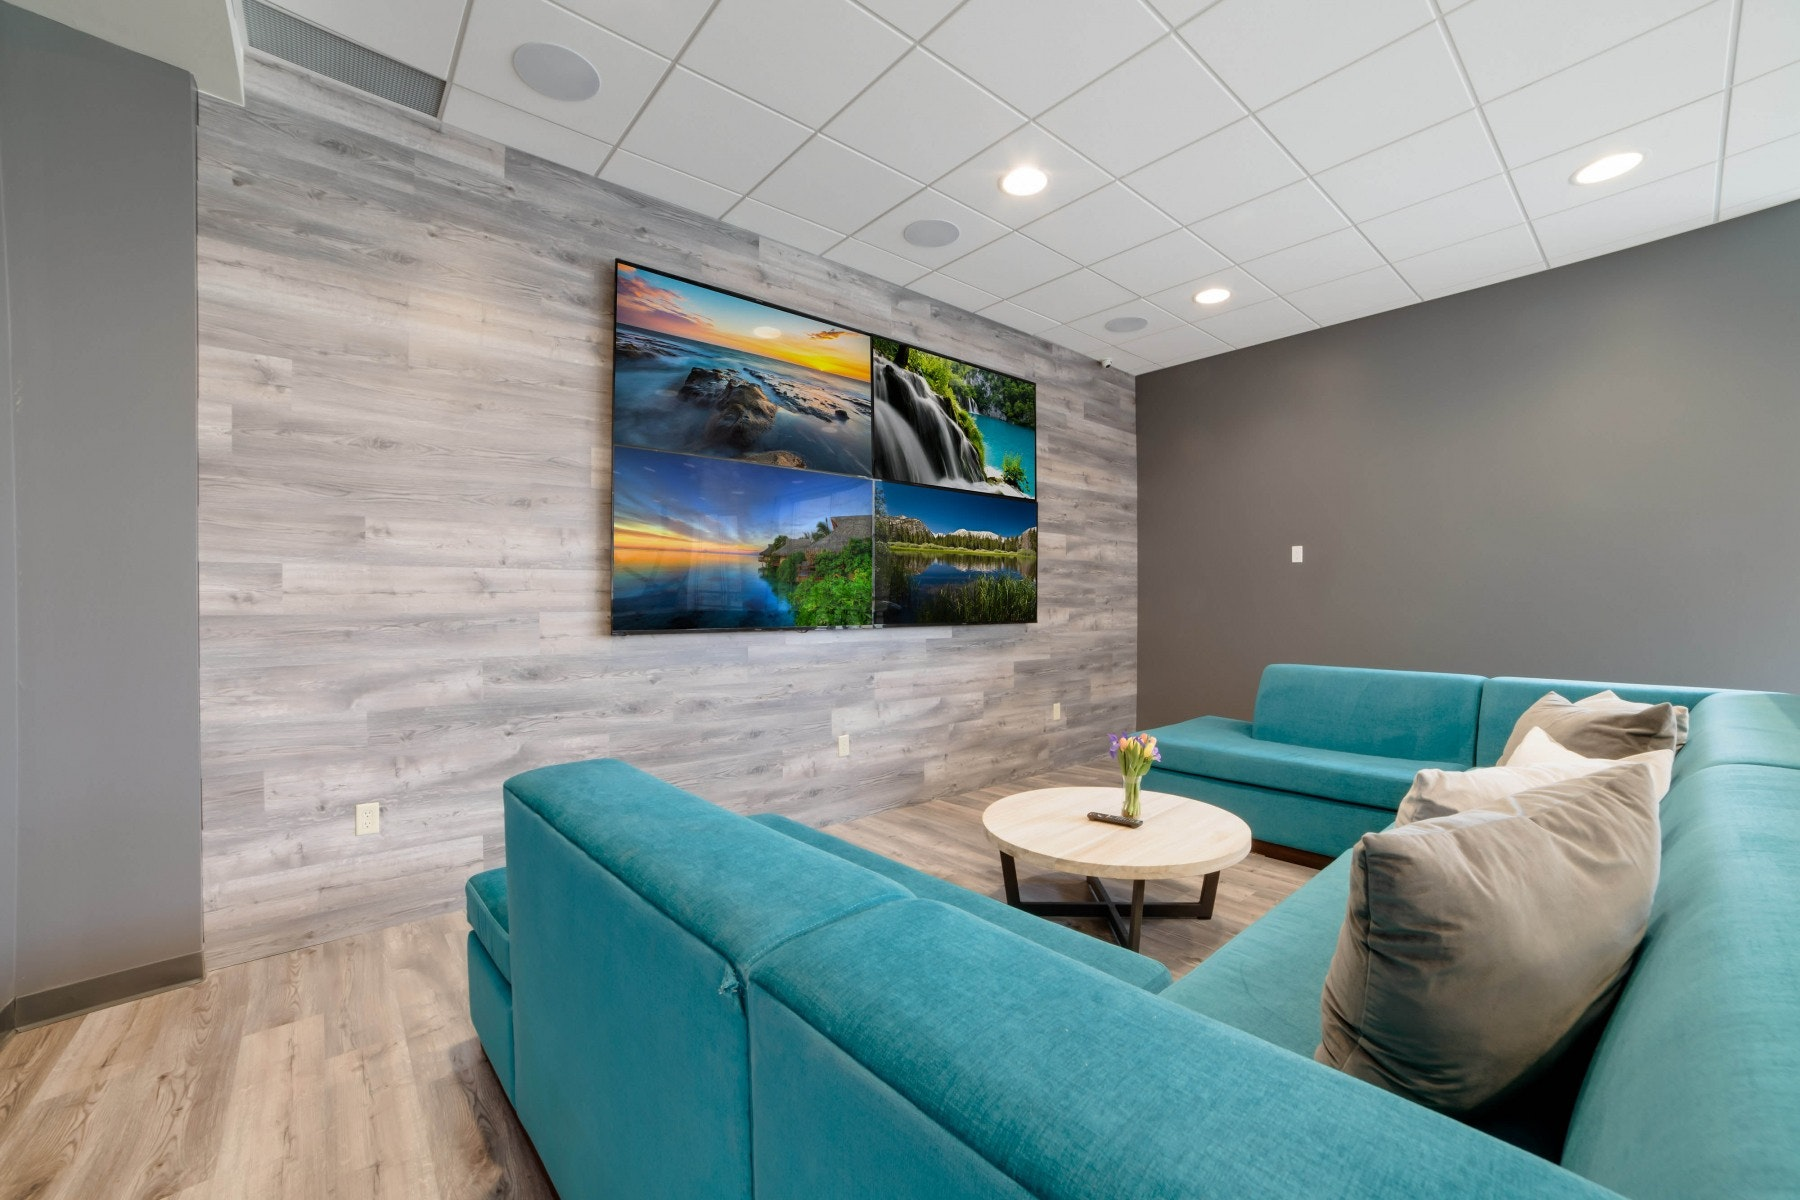 Big screen TV with blue couch and coffee table